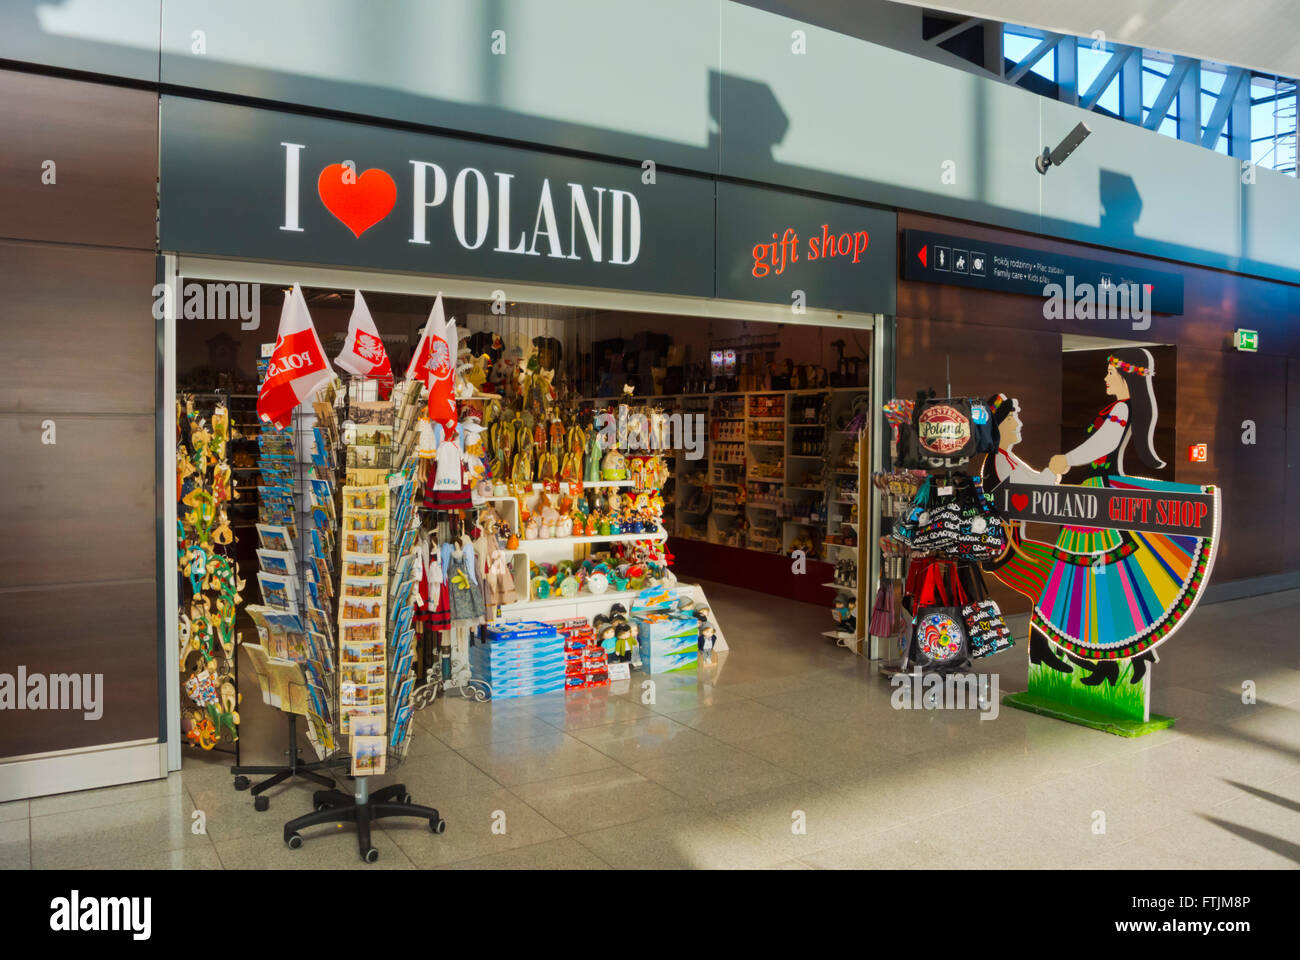 Gift Shop Lech Walesa Airport Gdansk Pomerani Poland Stock Photo Royalty Free Image